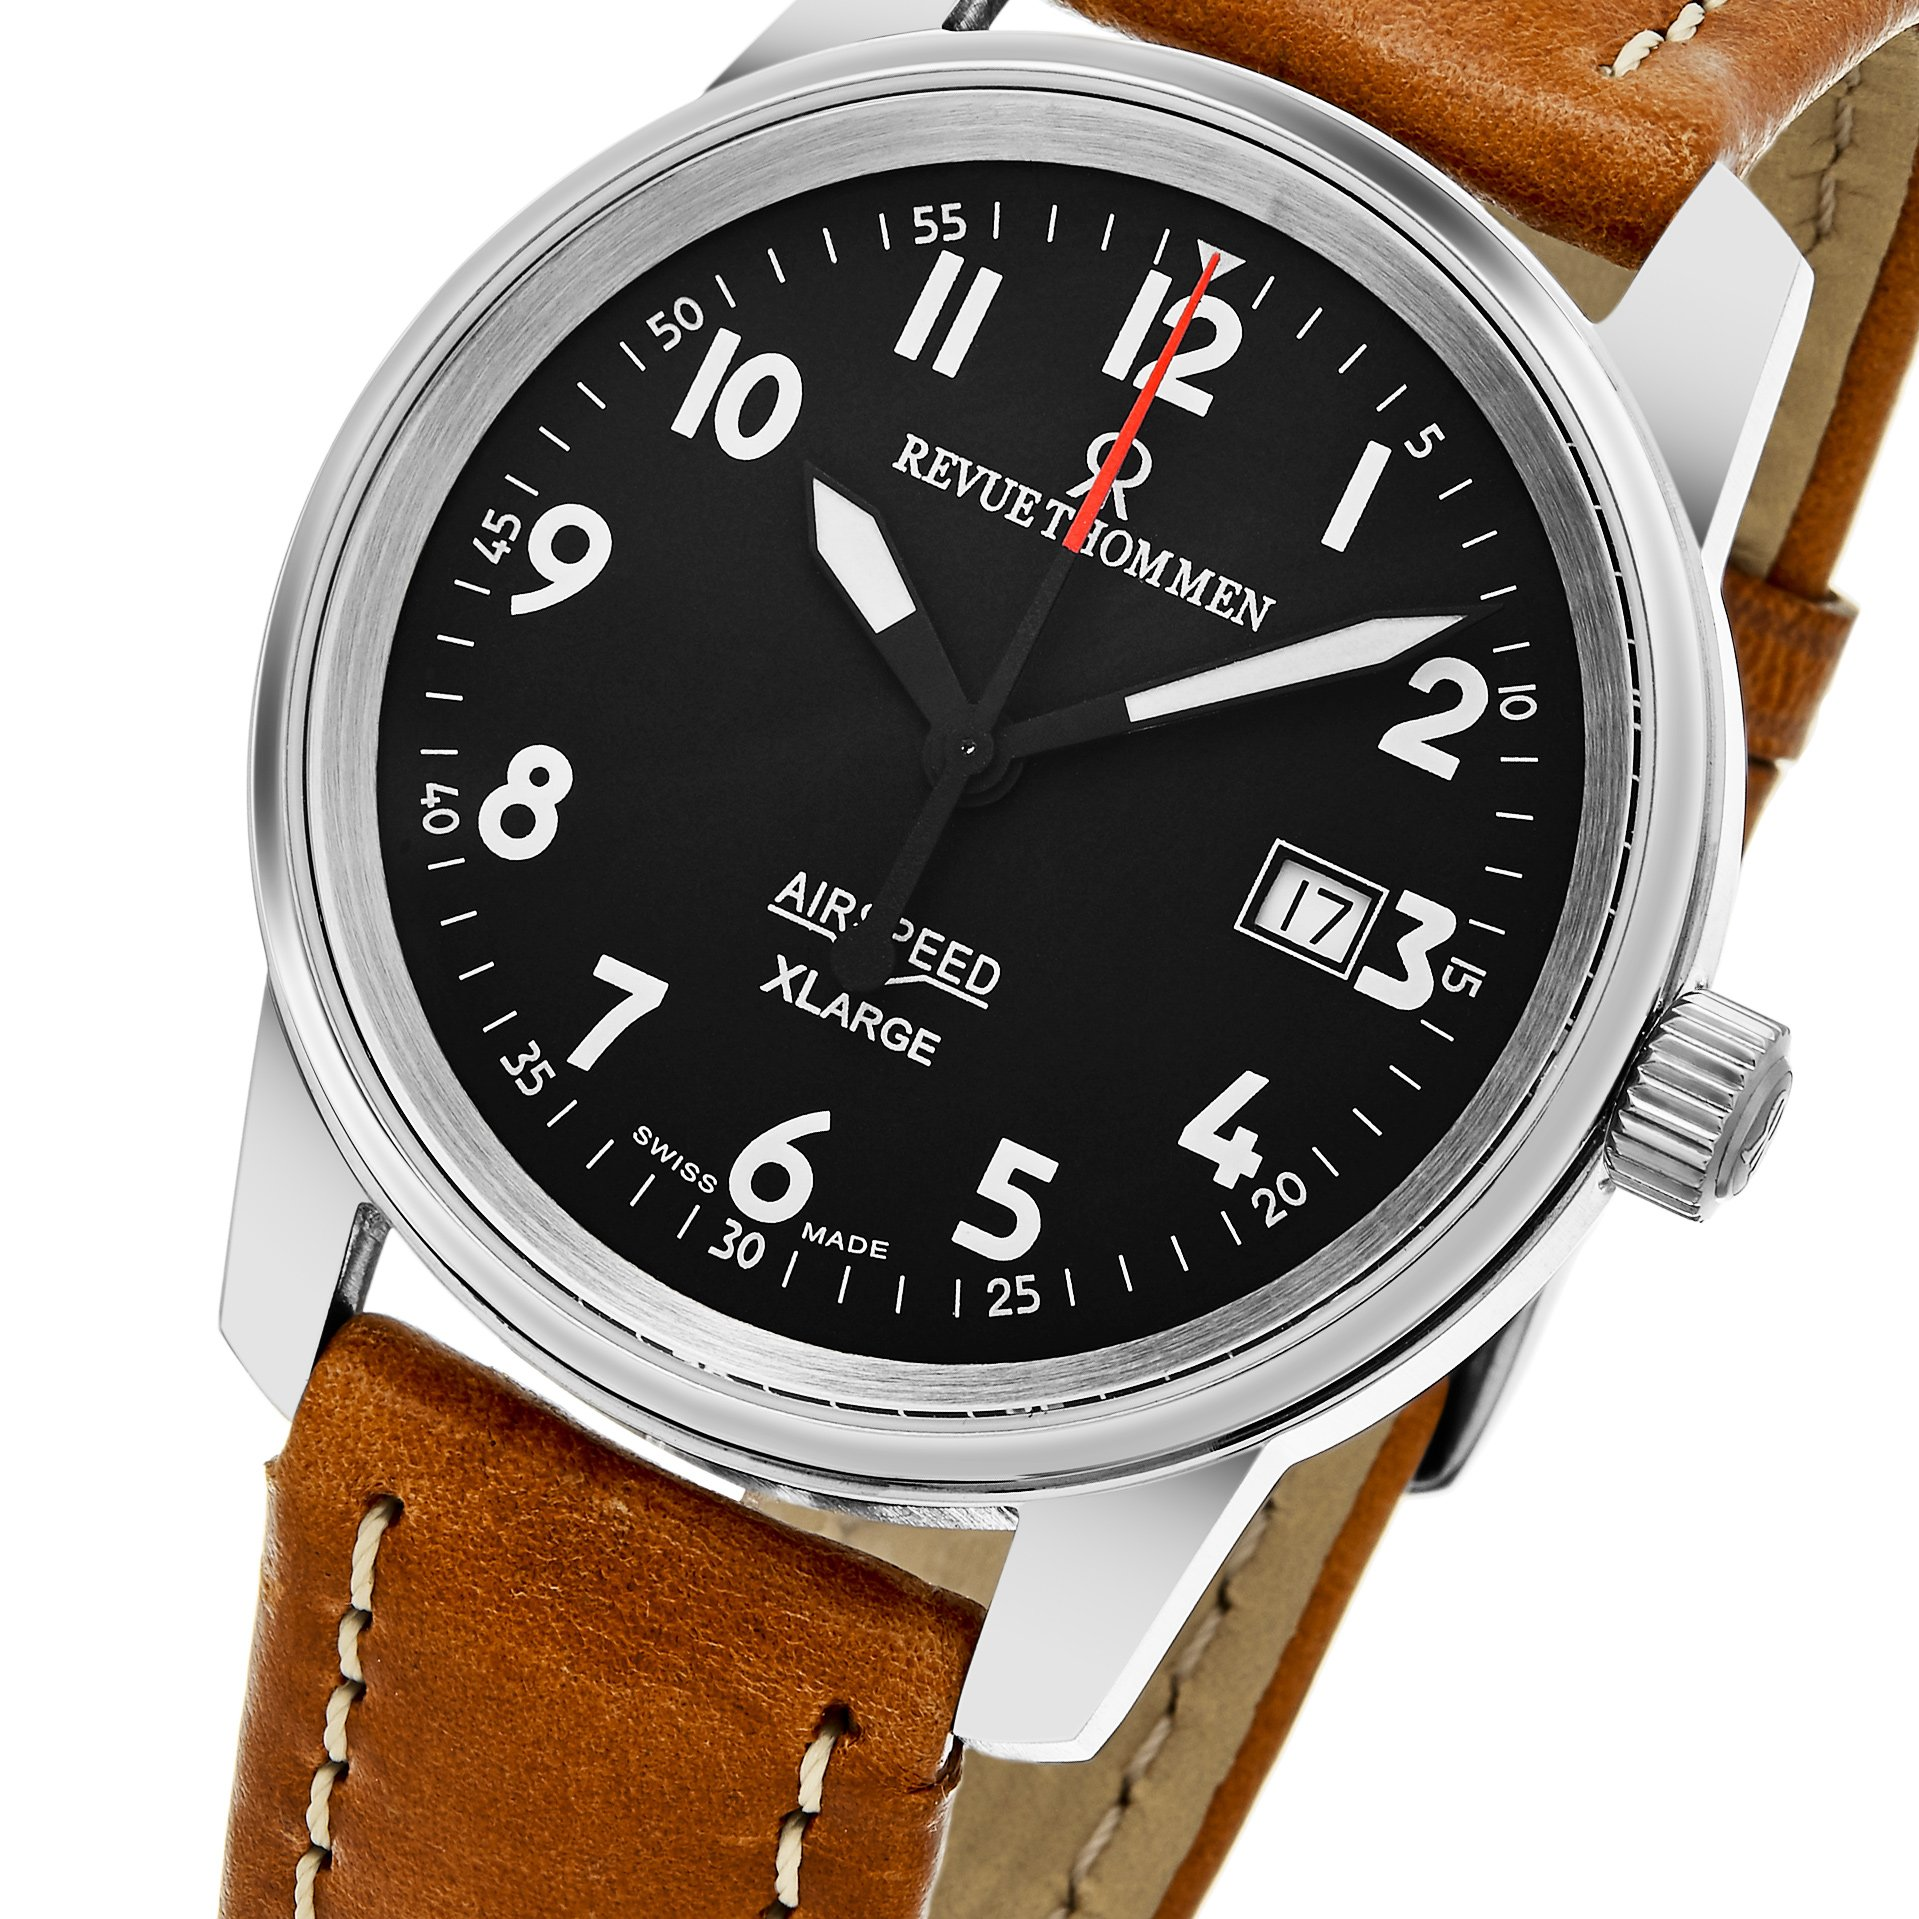 Revue Thommen 'Air Speed XL' Black Dial Brown Leather Strap Swiss Mechanical Watch 16052.2537 by Revue Thommen (Image #3)